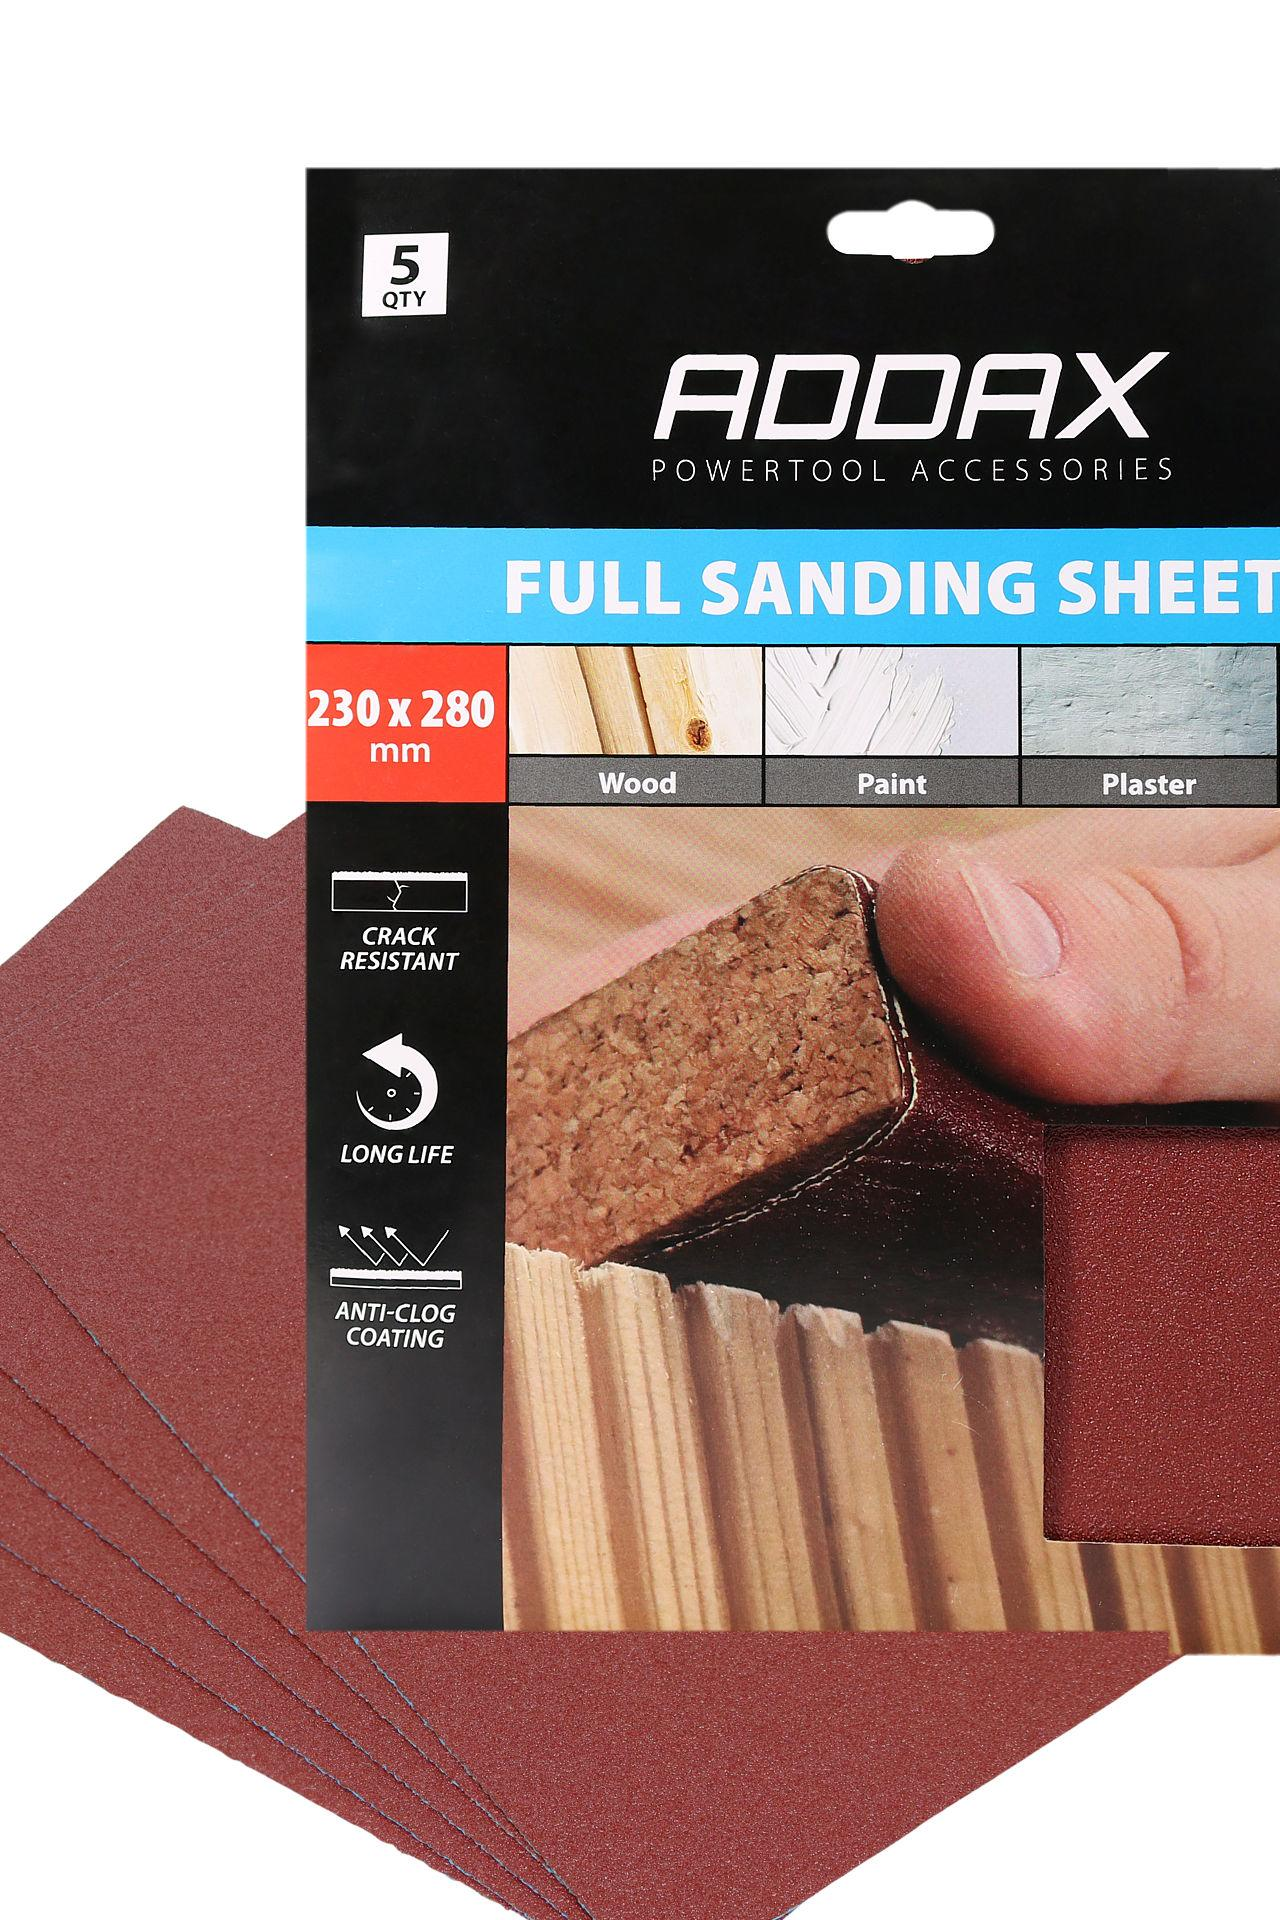 Pack of 5 Addax Sanding Sheets - Assorted Grit 80/120/180 - Red